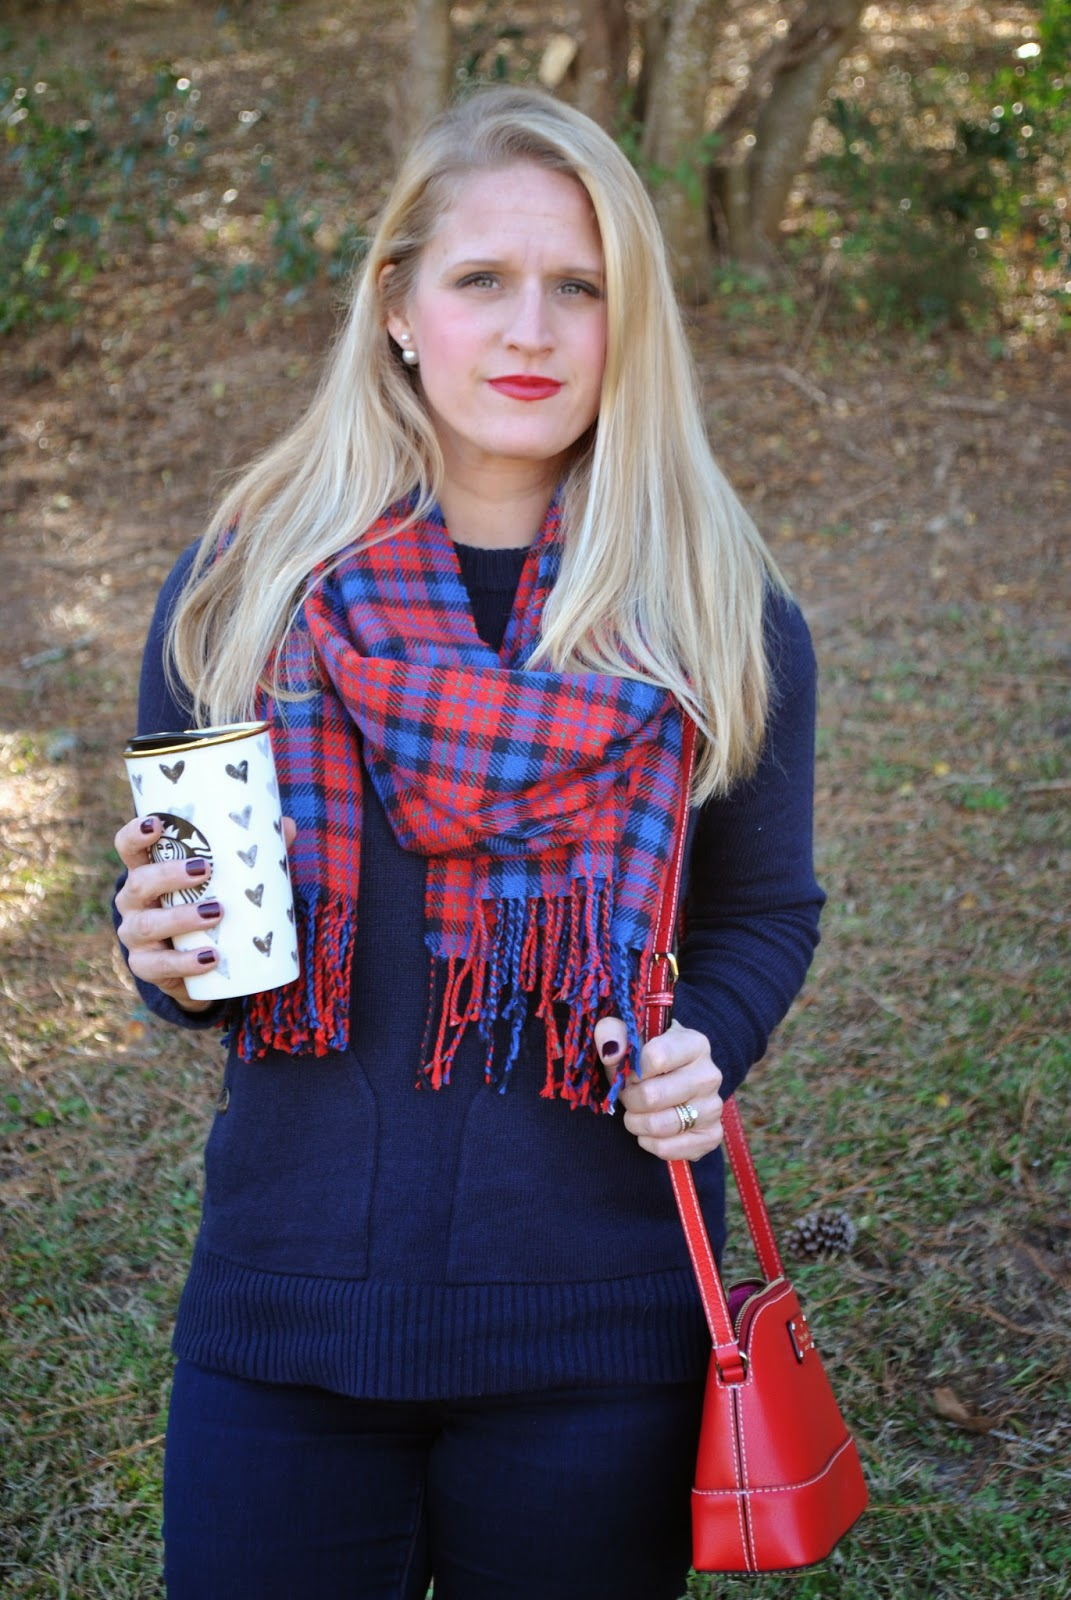 J Crew Factory Patch pocket Sweater Kate Spade Red Crossbody Plaid J Crew Scarf Holiday Outfit